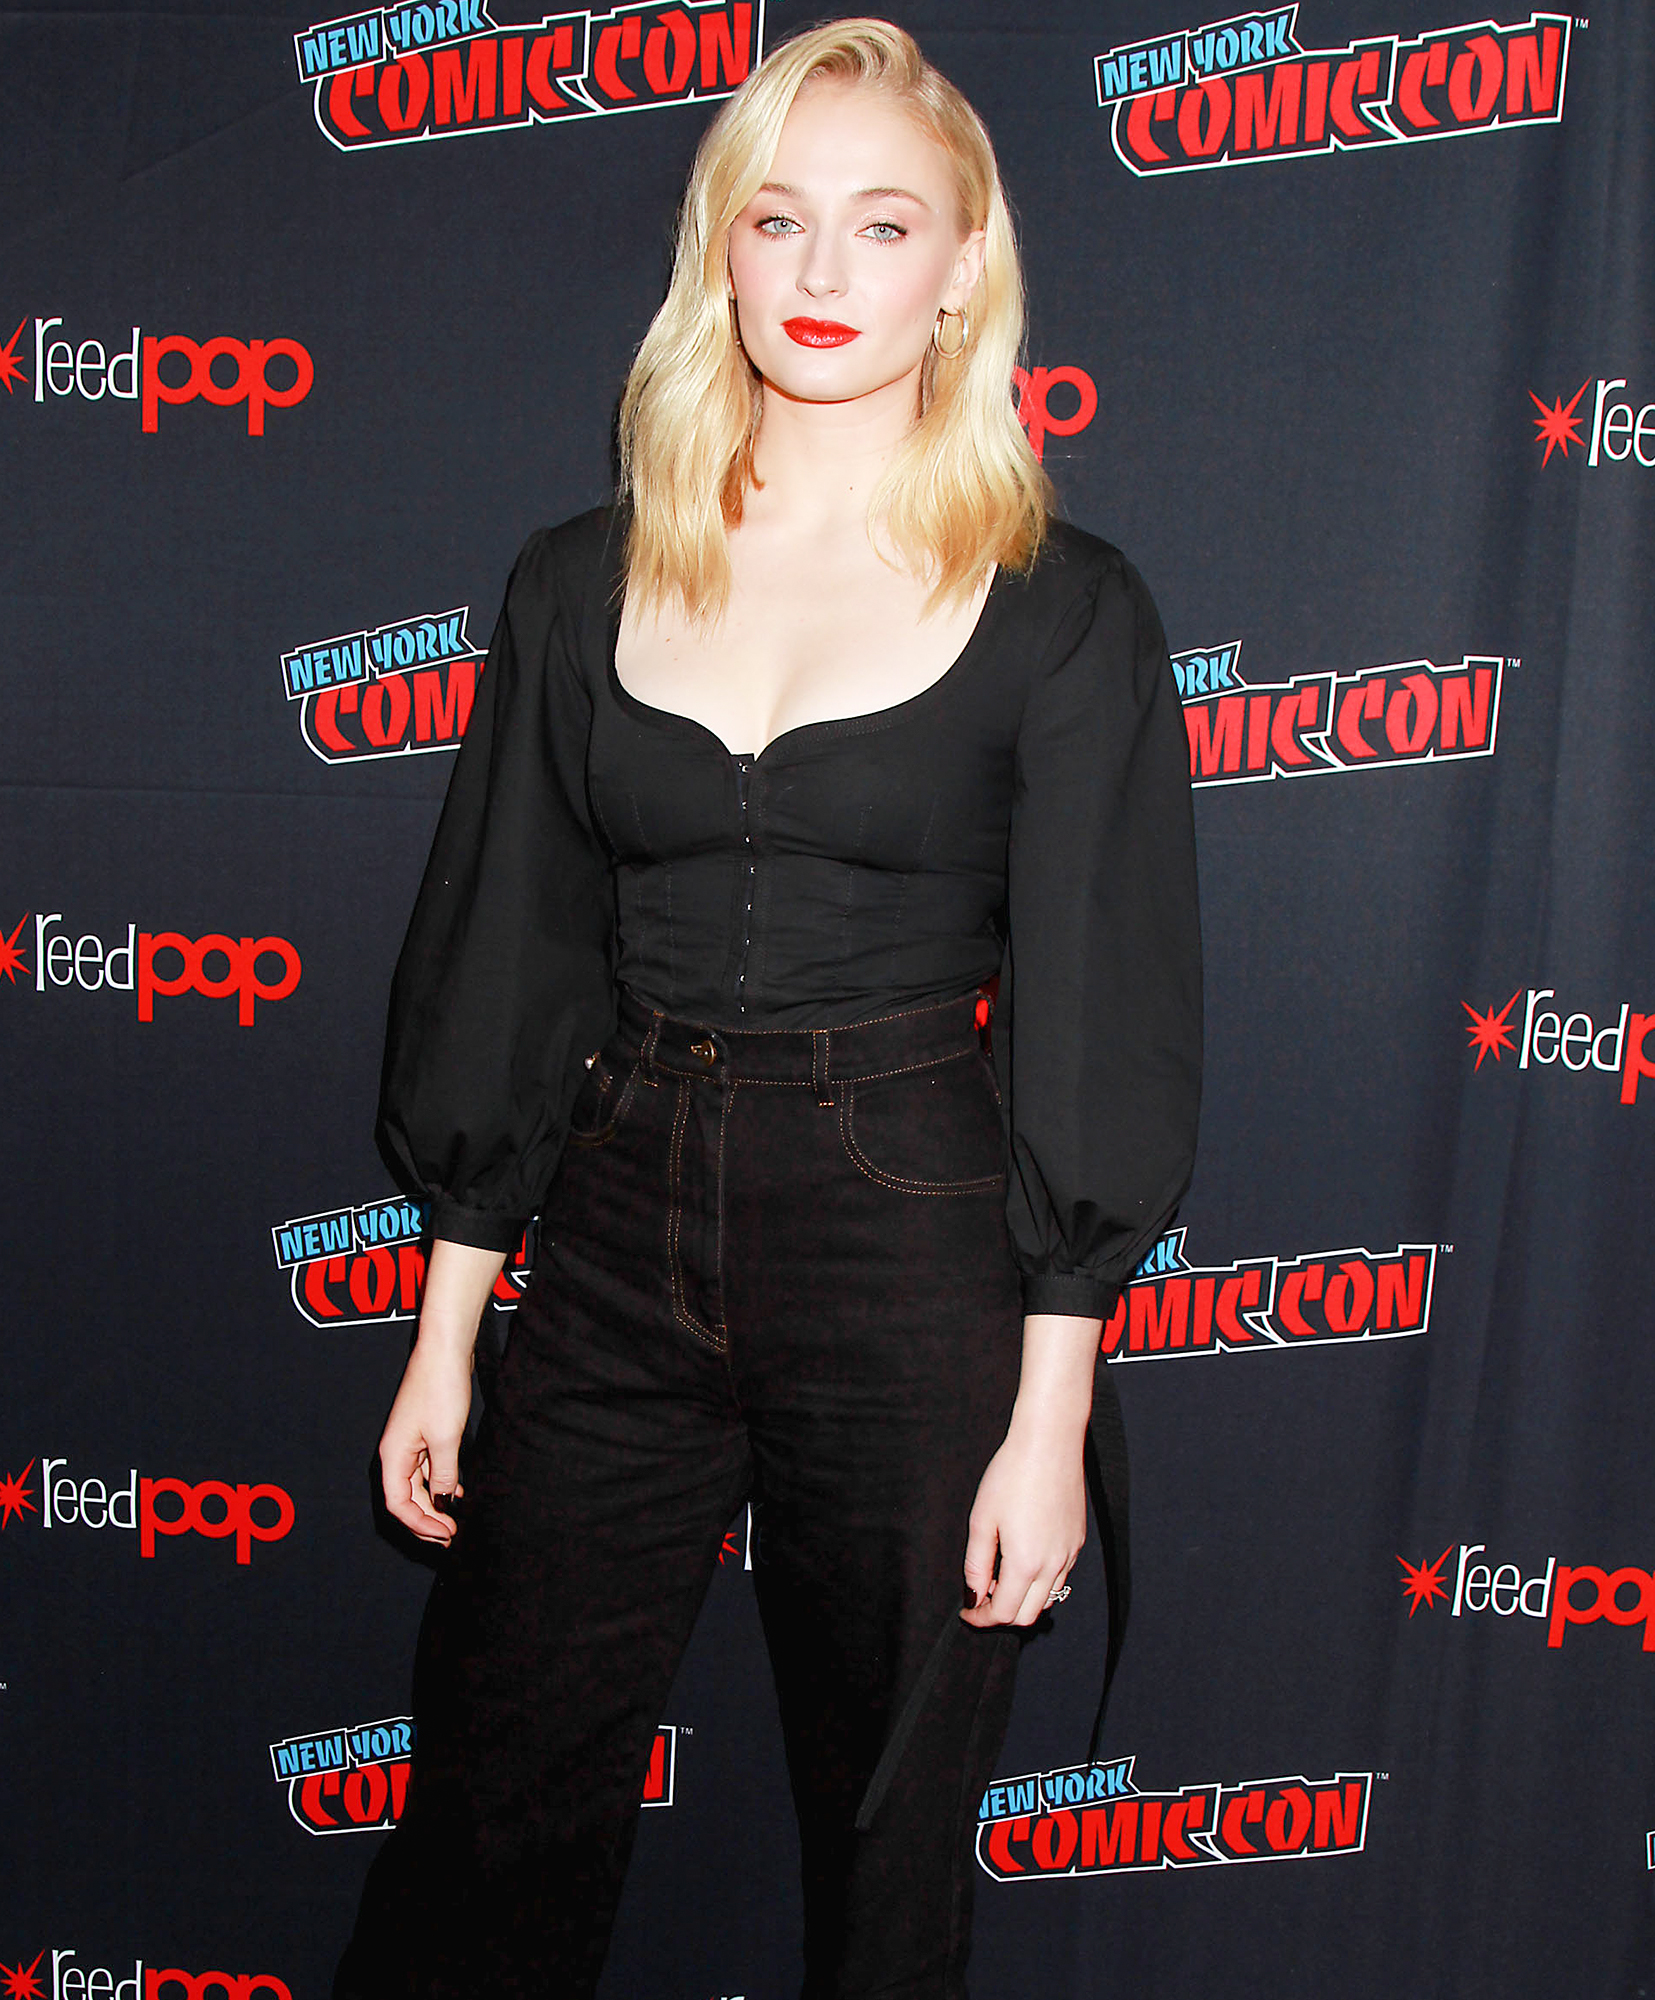 Dark Phoenix Cast and Filmmakers  Attend New York Comic Con, USA - 05 Oct 2018